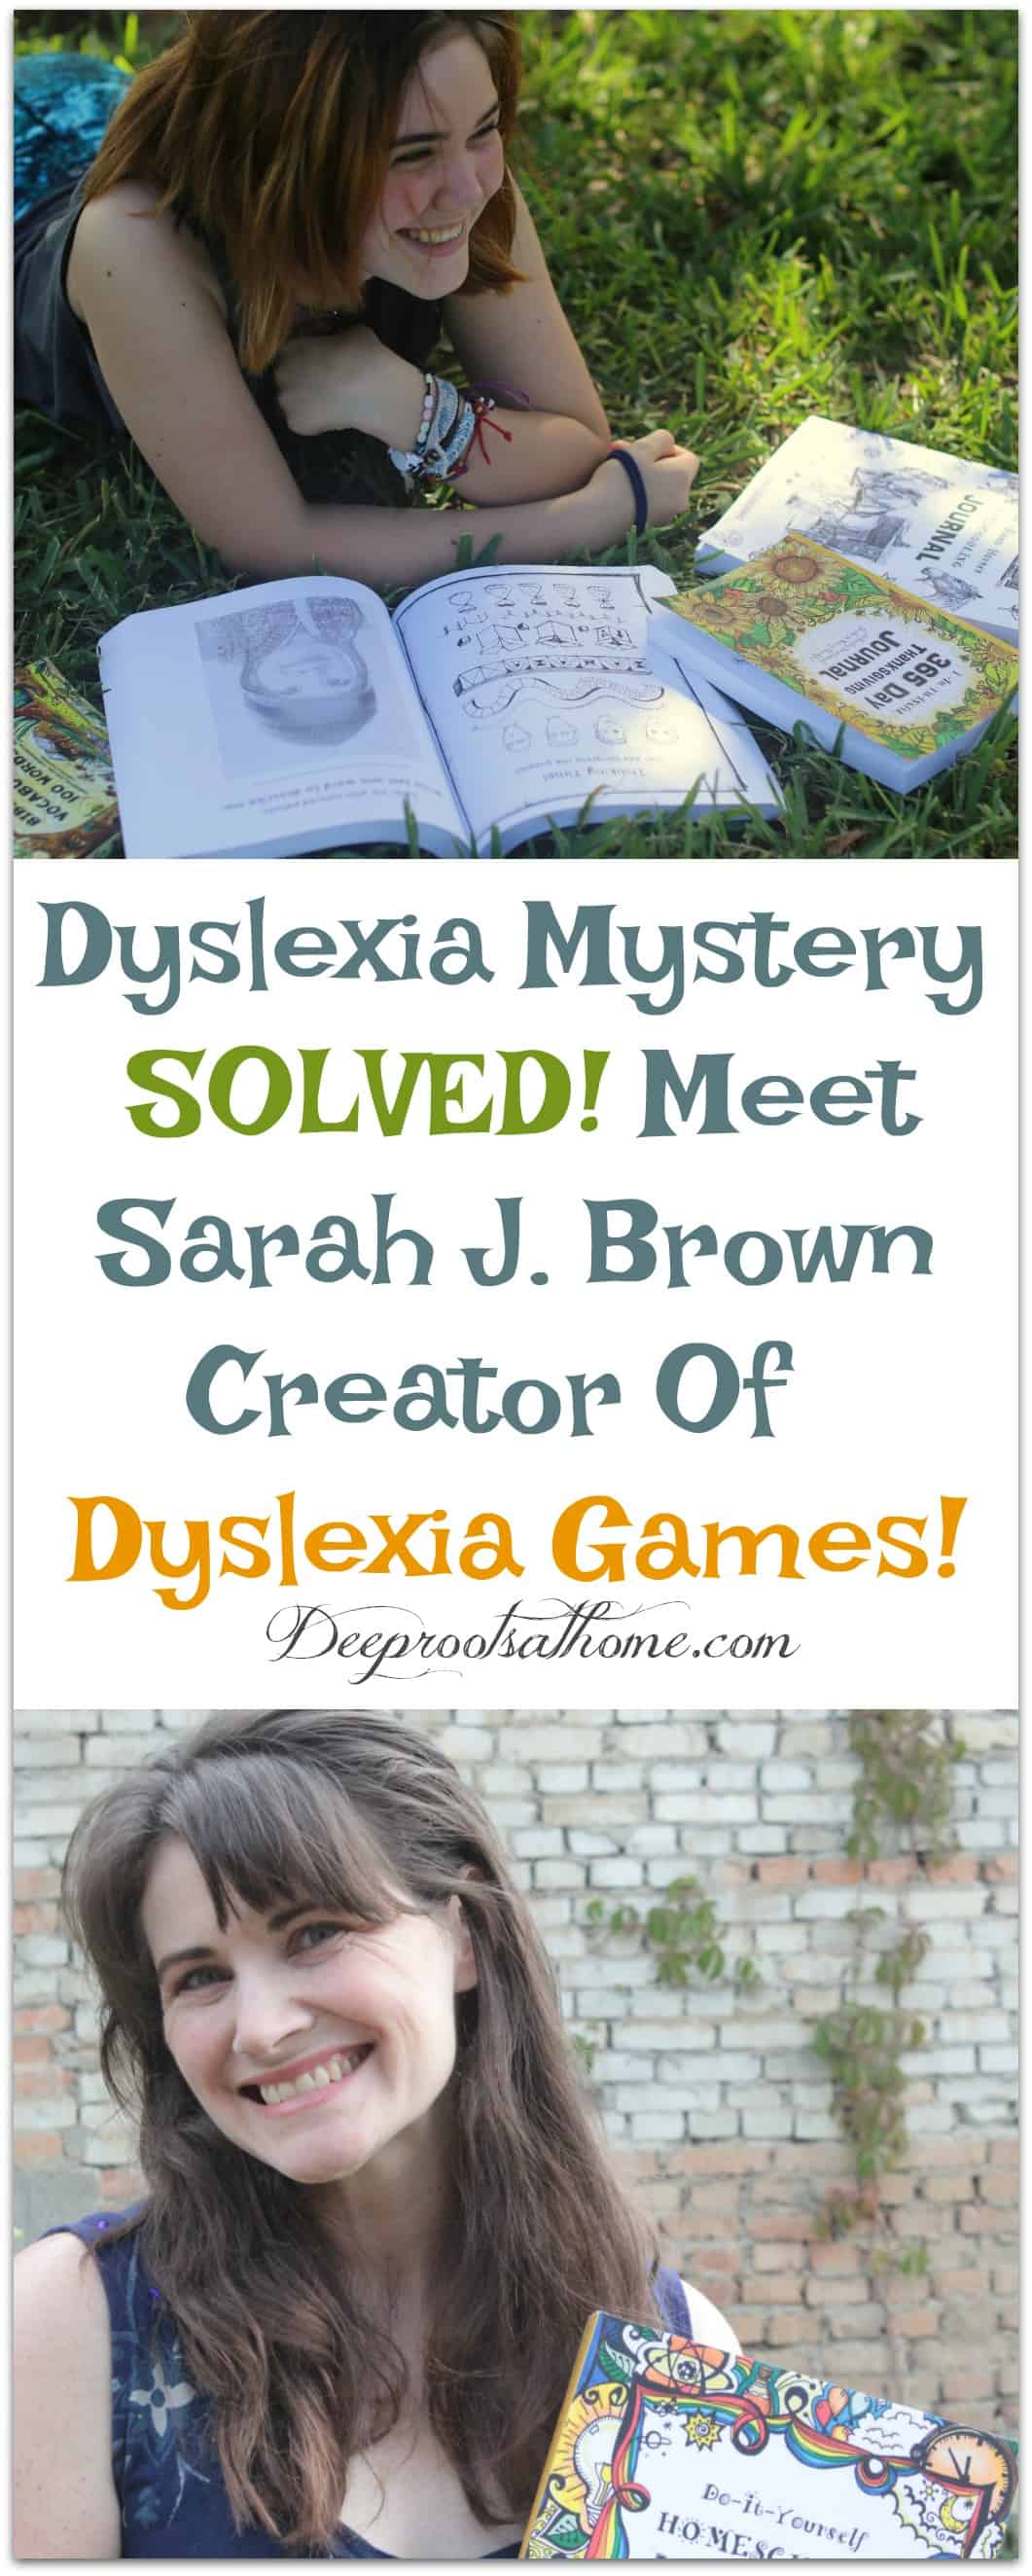 Dyslexia Mystery SOLVED! Meet Sarah J. Brown Creator Of Dyslexia Games! Thousands of children around the globe use Dyslexia Games with a 99% satisfaction rate. #homeschool #kids #parenting #happy #school  #children  #mentalhealth #books #business #childhood #dyslexia #schoolsupplies #brainteasers